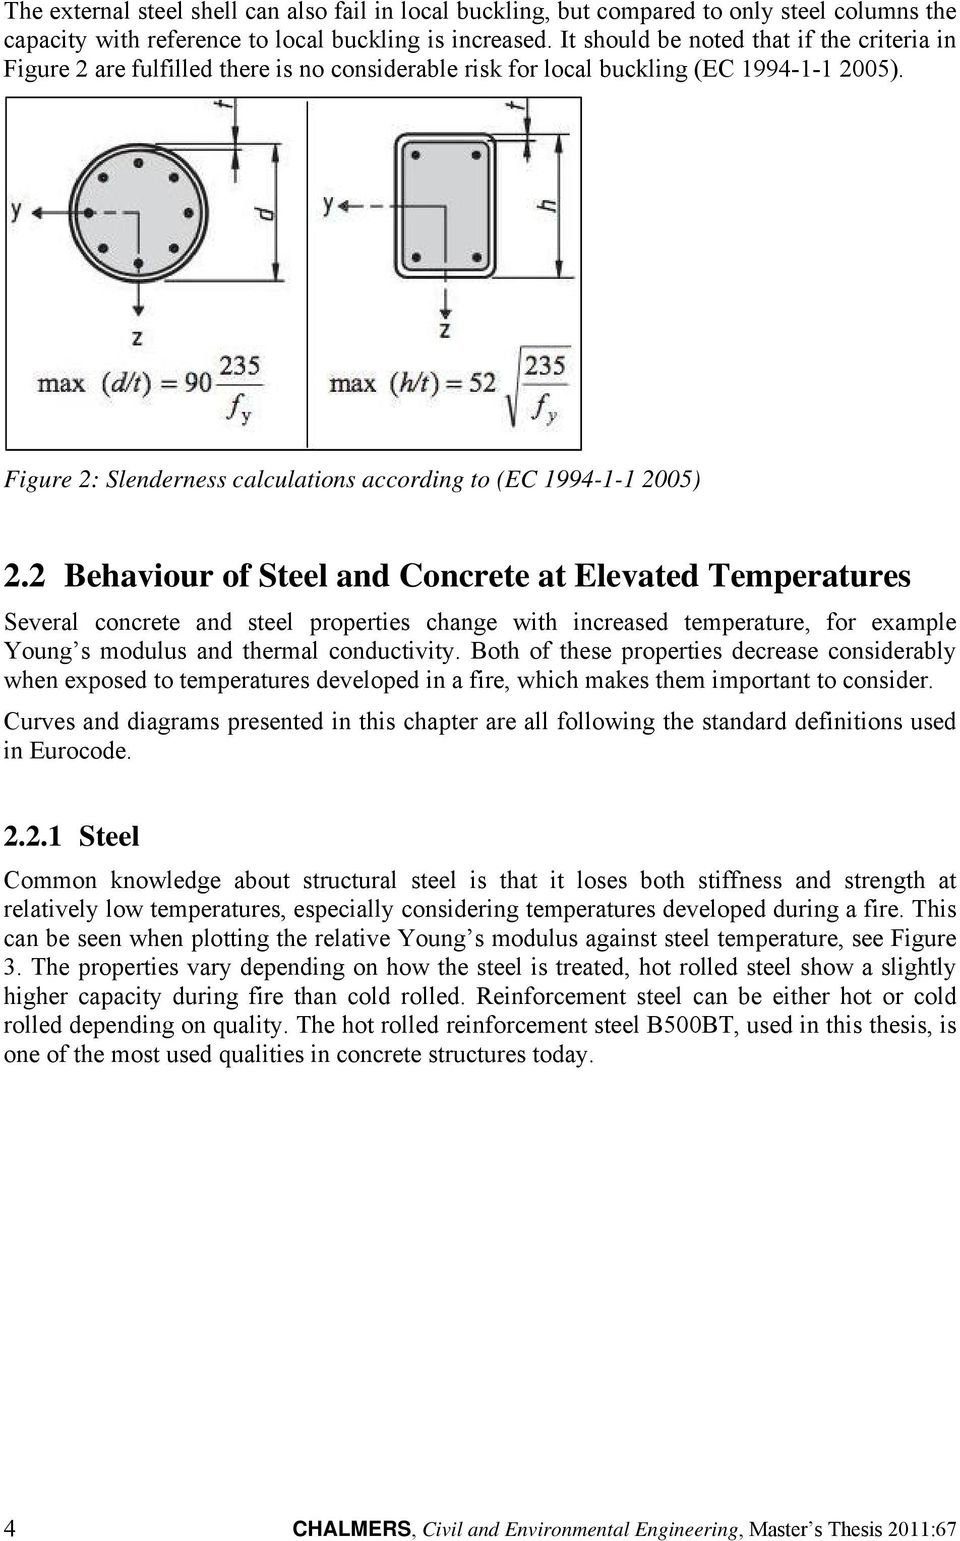 Figure 2: Slenderness calculations according to (EC 1994-1-1 2005) 2.